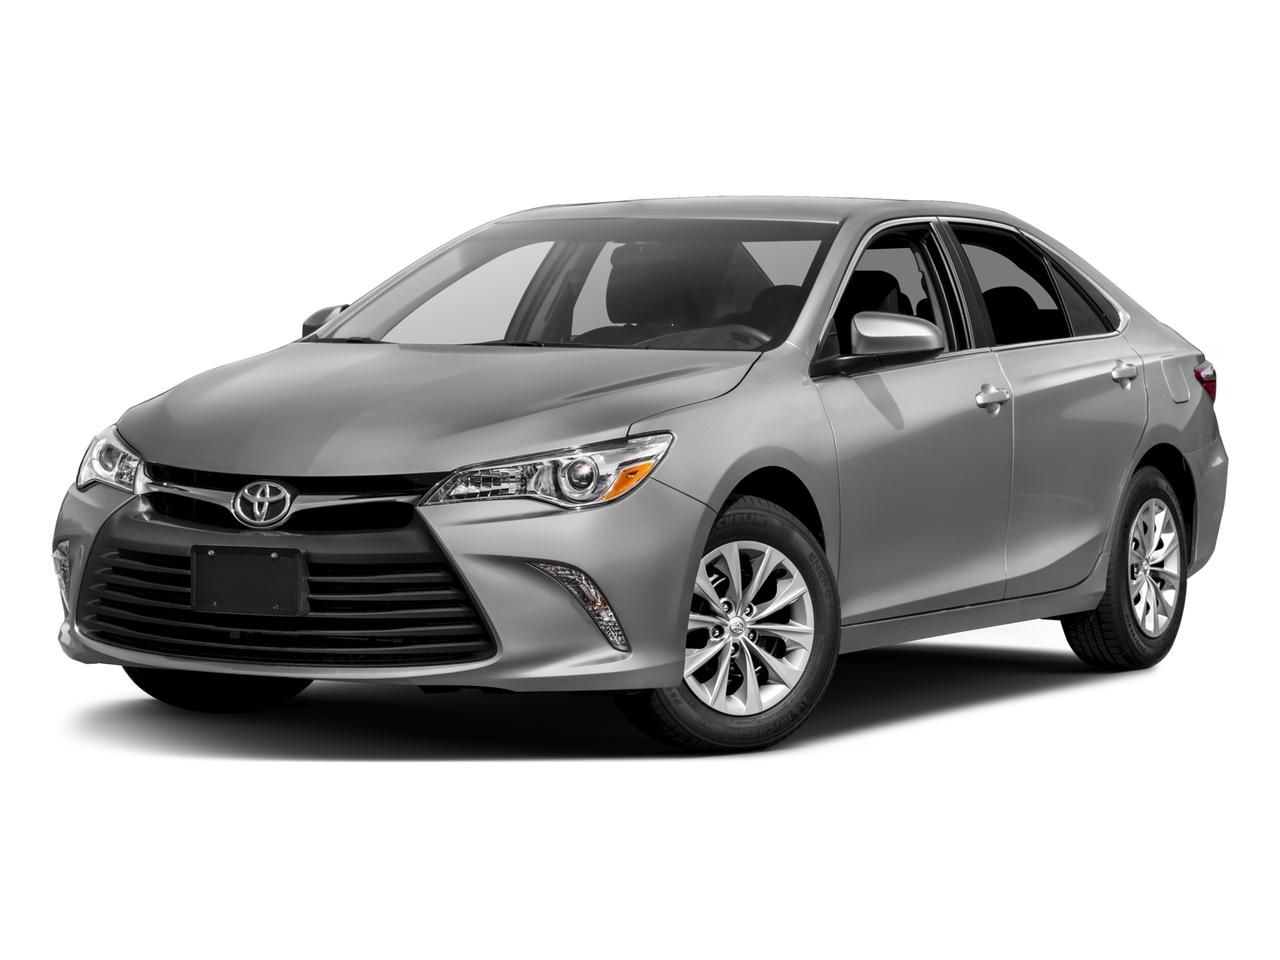 2016 Toyota Camry Vehicle Photo in Pawling, NY 12564-3219